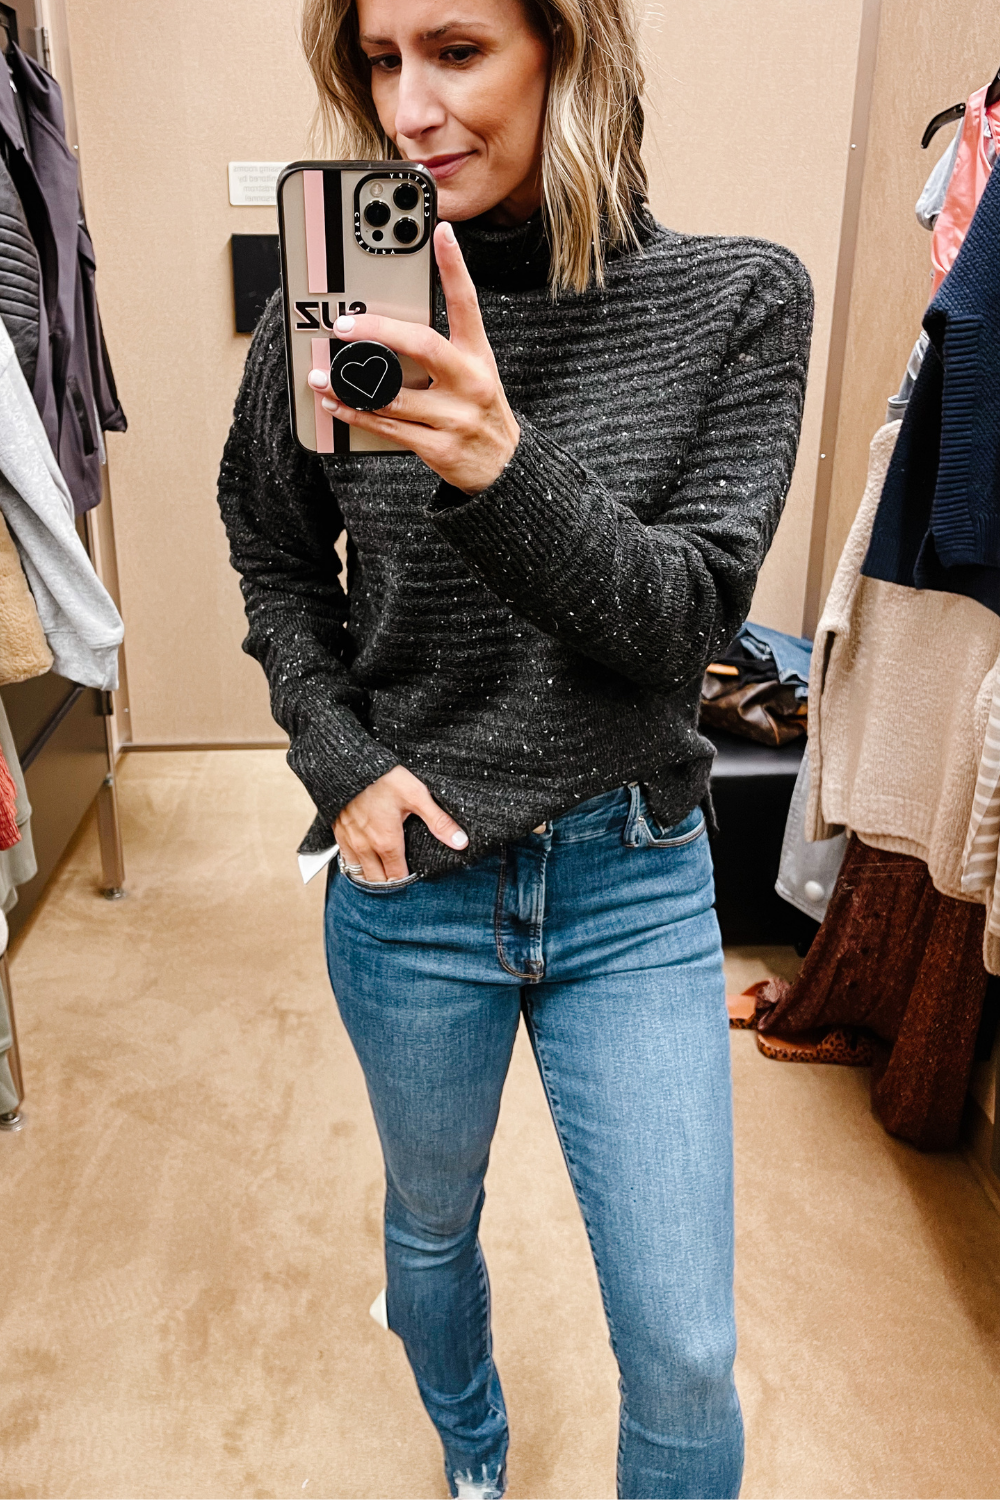 NORDSTROM ANNIVERSARY SALE: Madewell sweater and skinny jeans